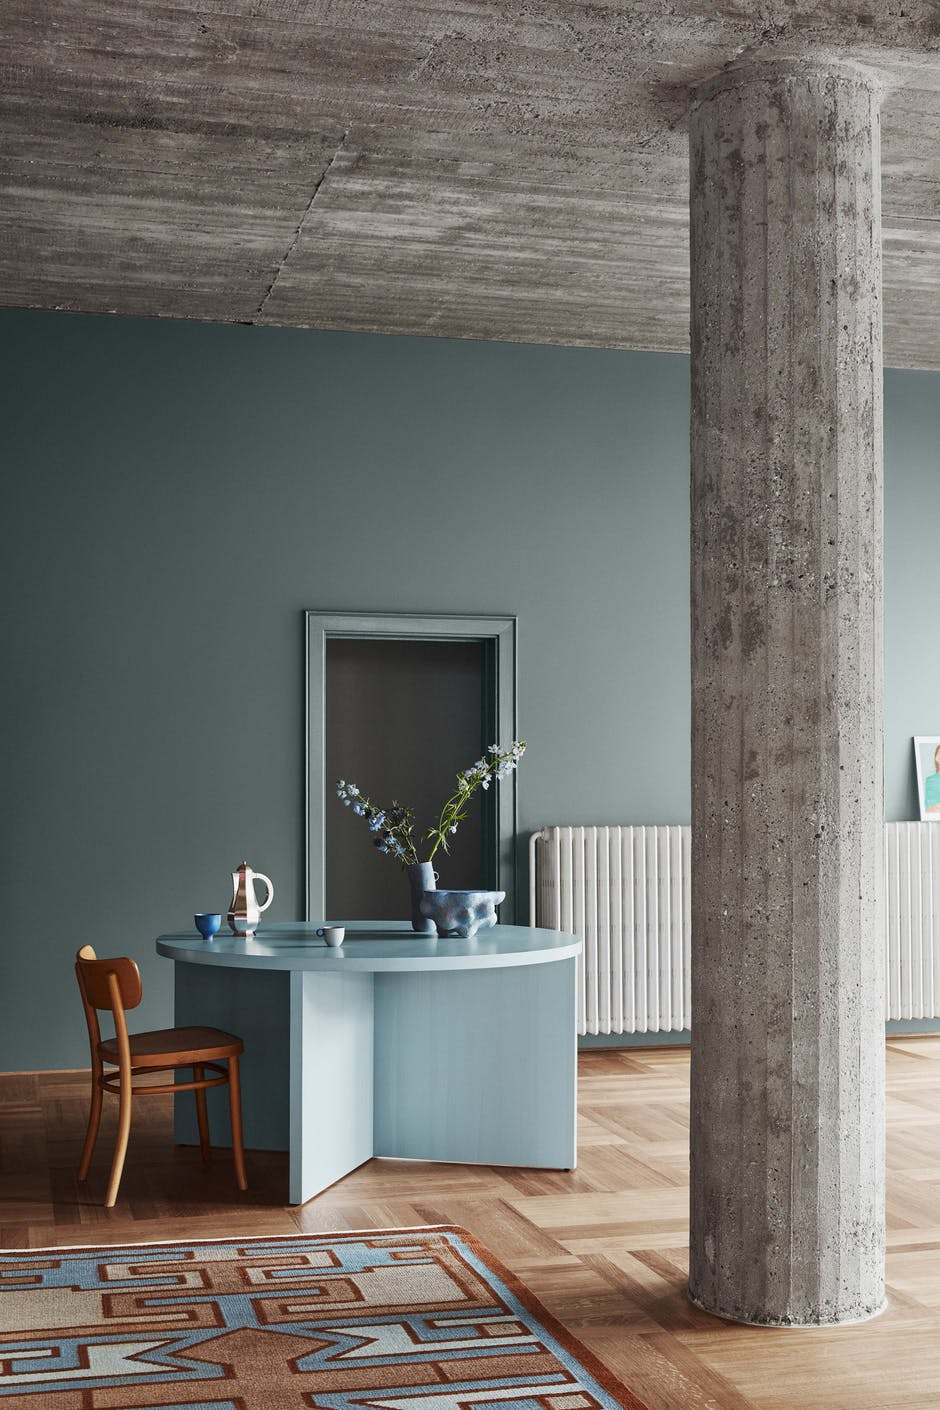 The Color Trends For 2020 Are Inspired By Nature The Nordroom